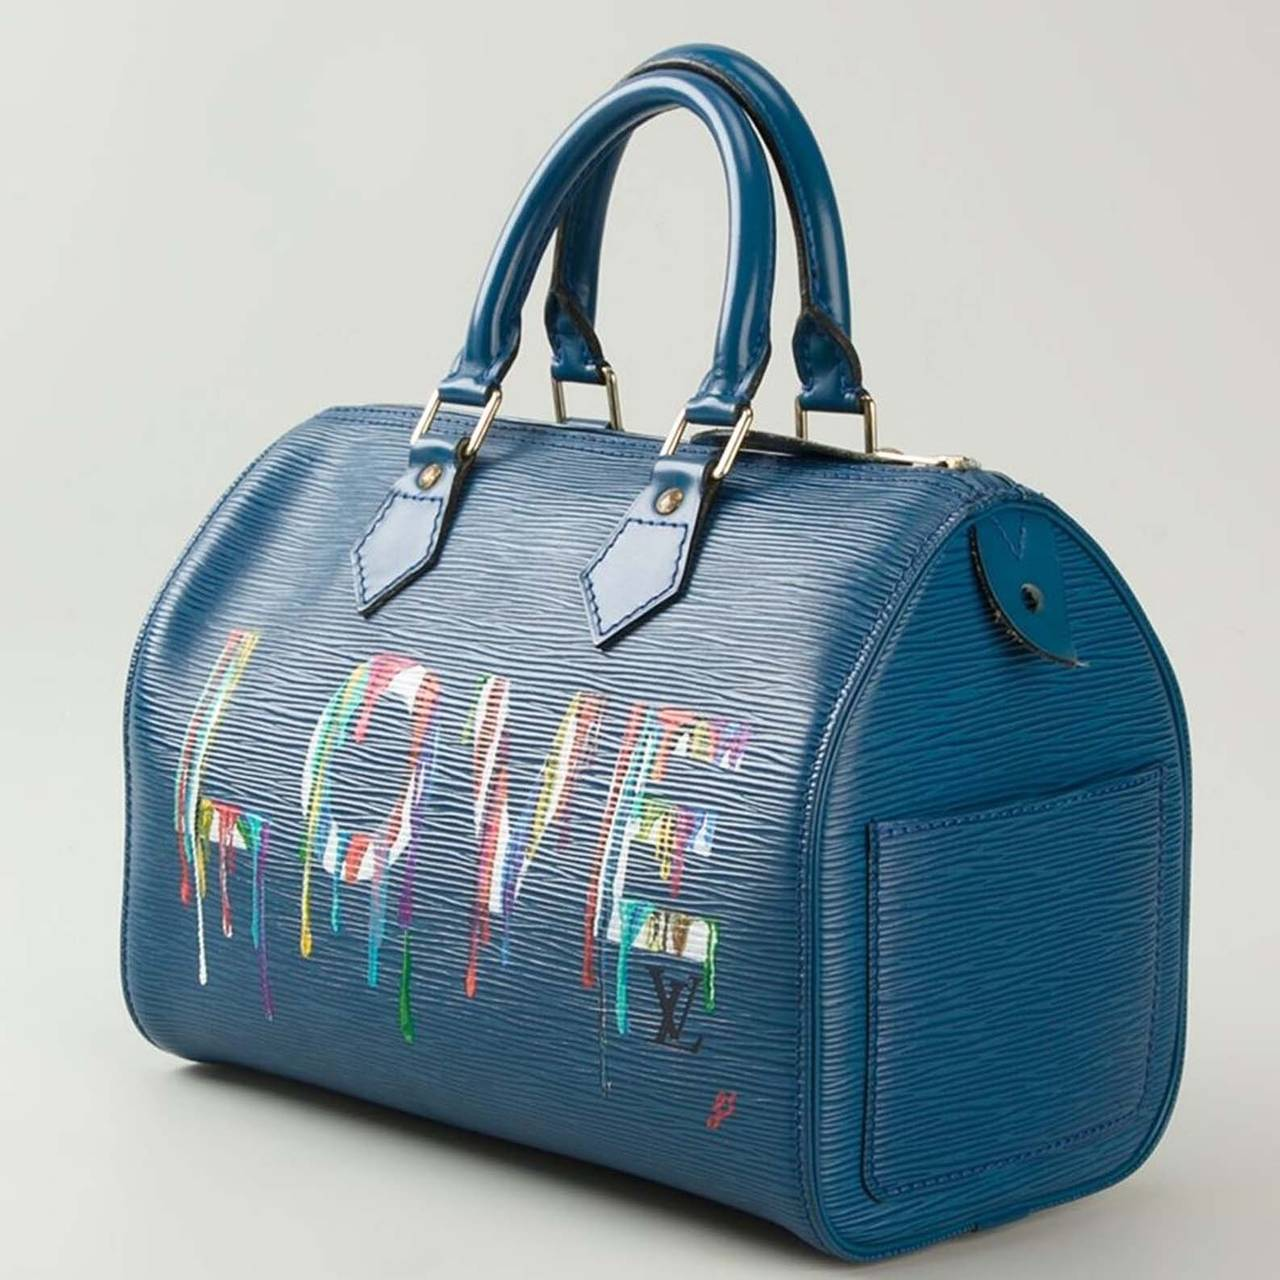 252a2532c213 Louis Vuitton Hand Painted Blue Epi Speedy Bag. This is a hand painted  vintage Louis